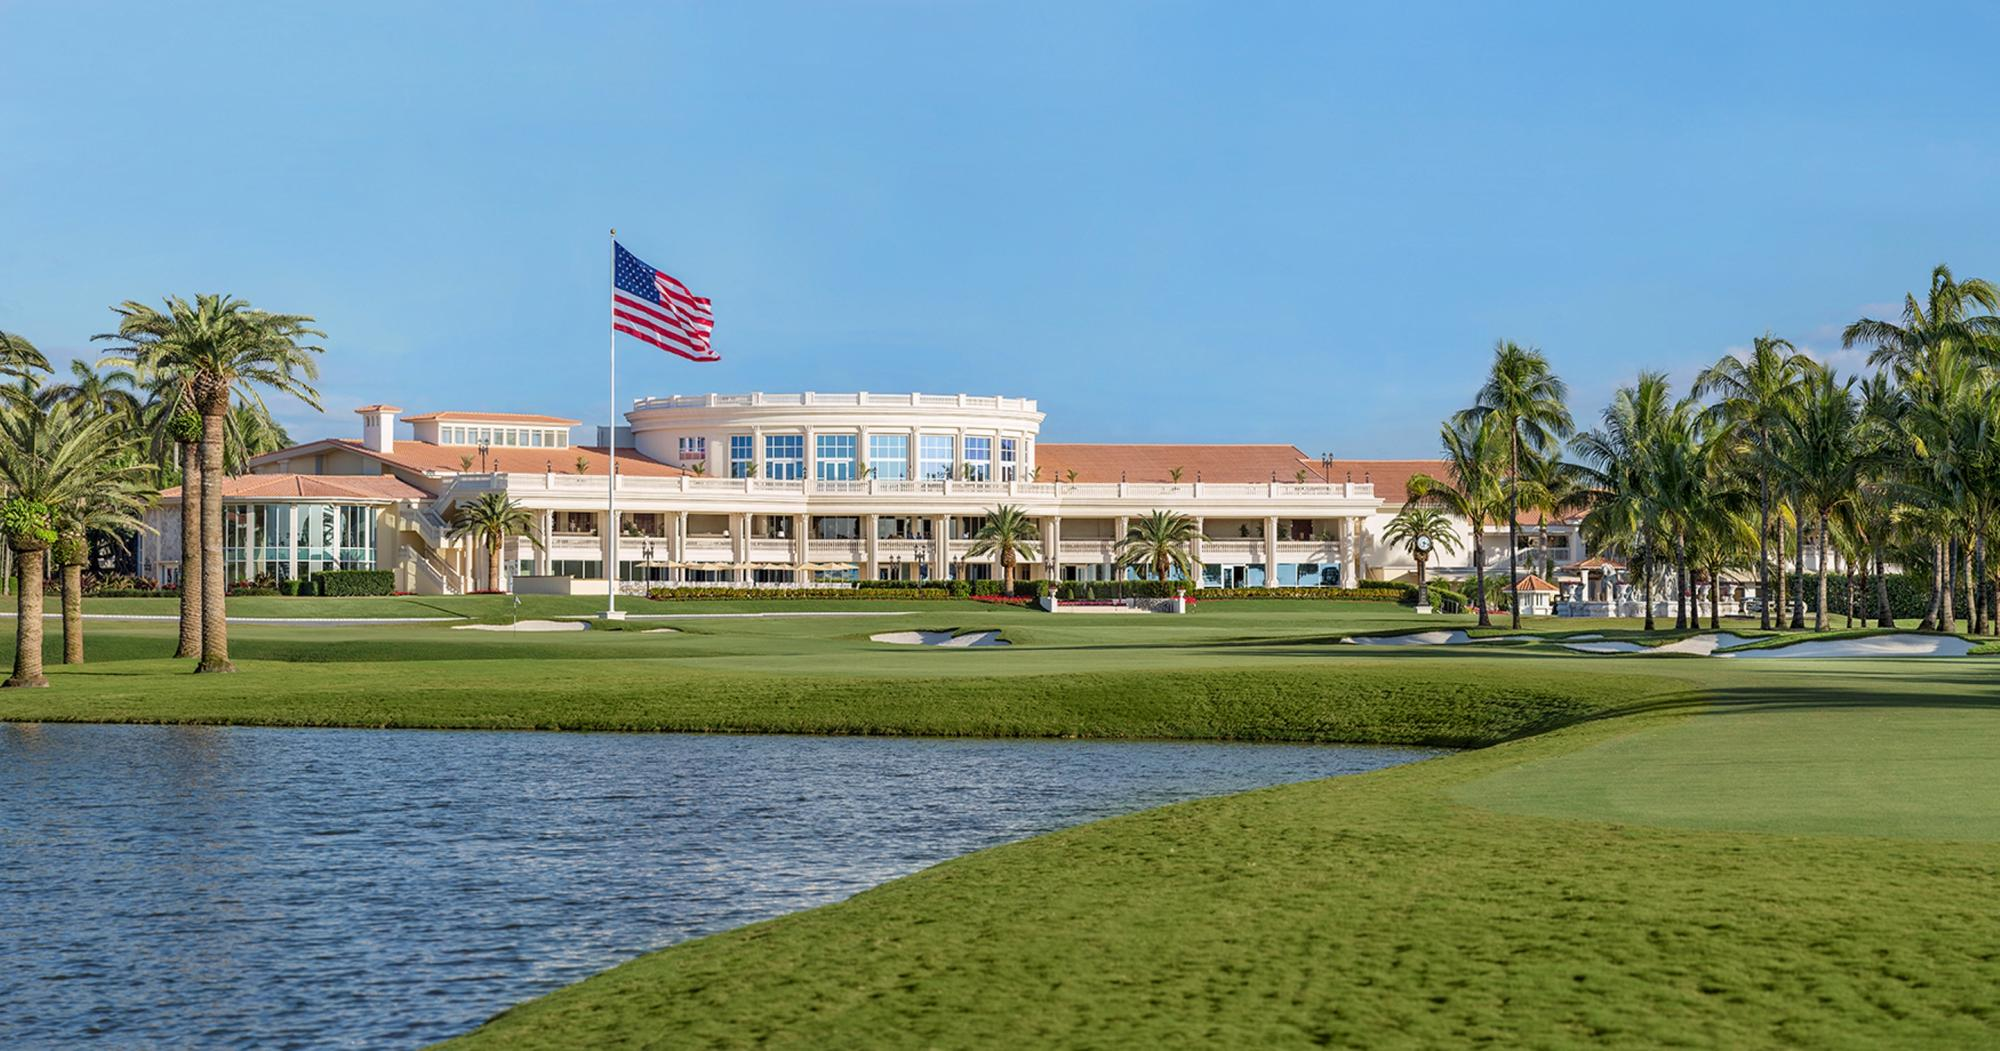 Trump National Doral Miami Golf hosts among the leading golf course near Florida